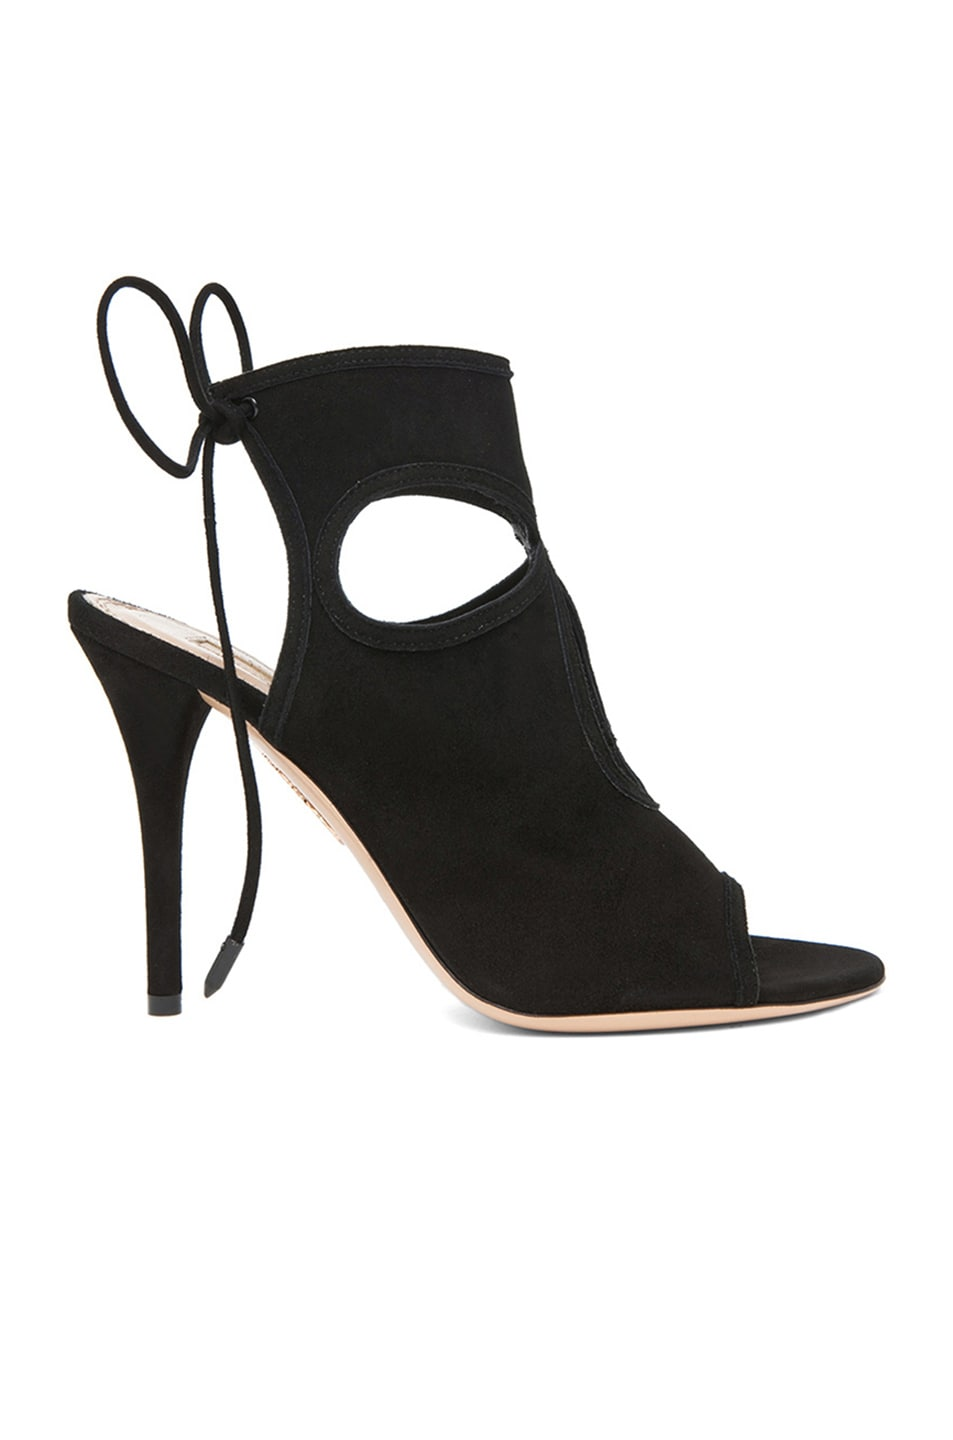 Image 1 of Aquazzura Sexy Thing Suede Heels in Black